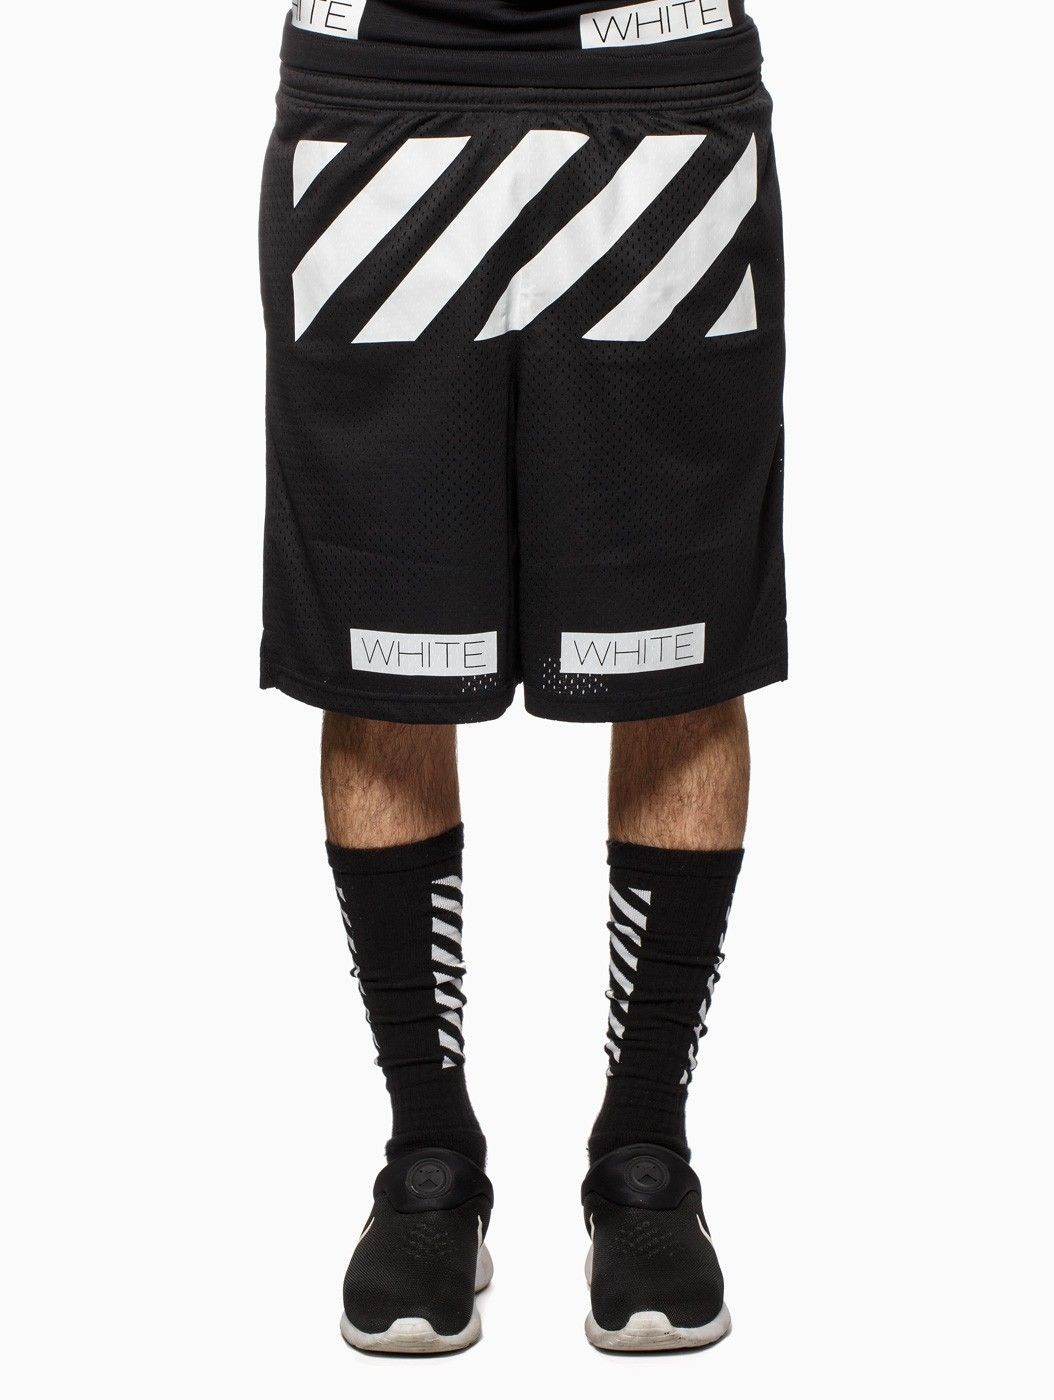 Striped walkshort from the S/S2015 Off-White c/o Virgil Abloh collection in black.